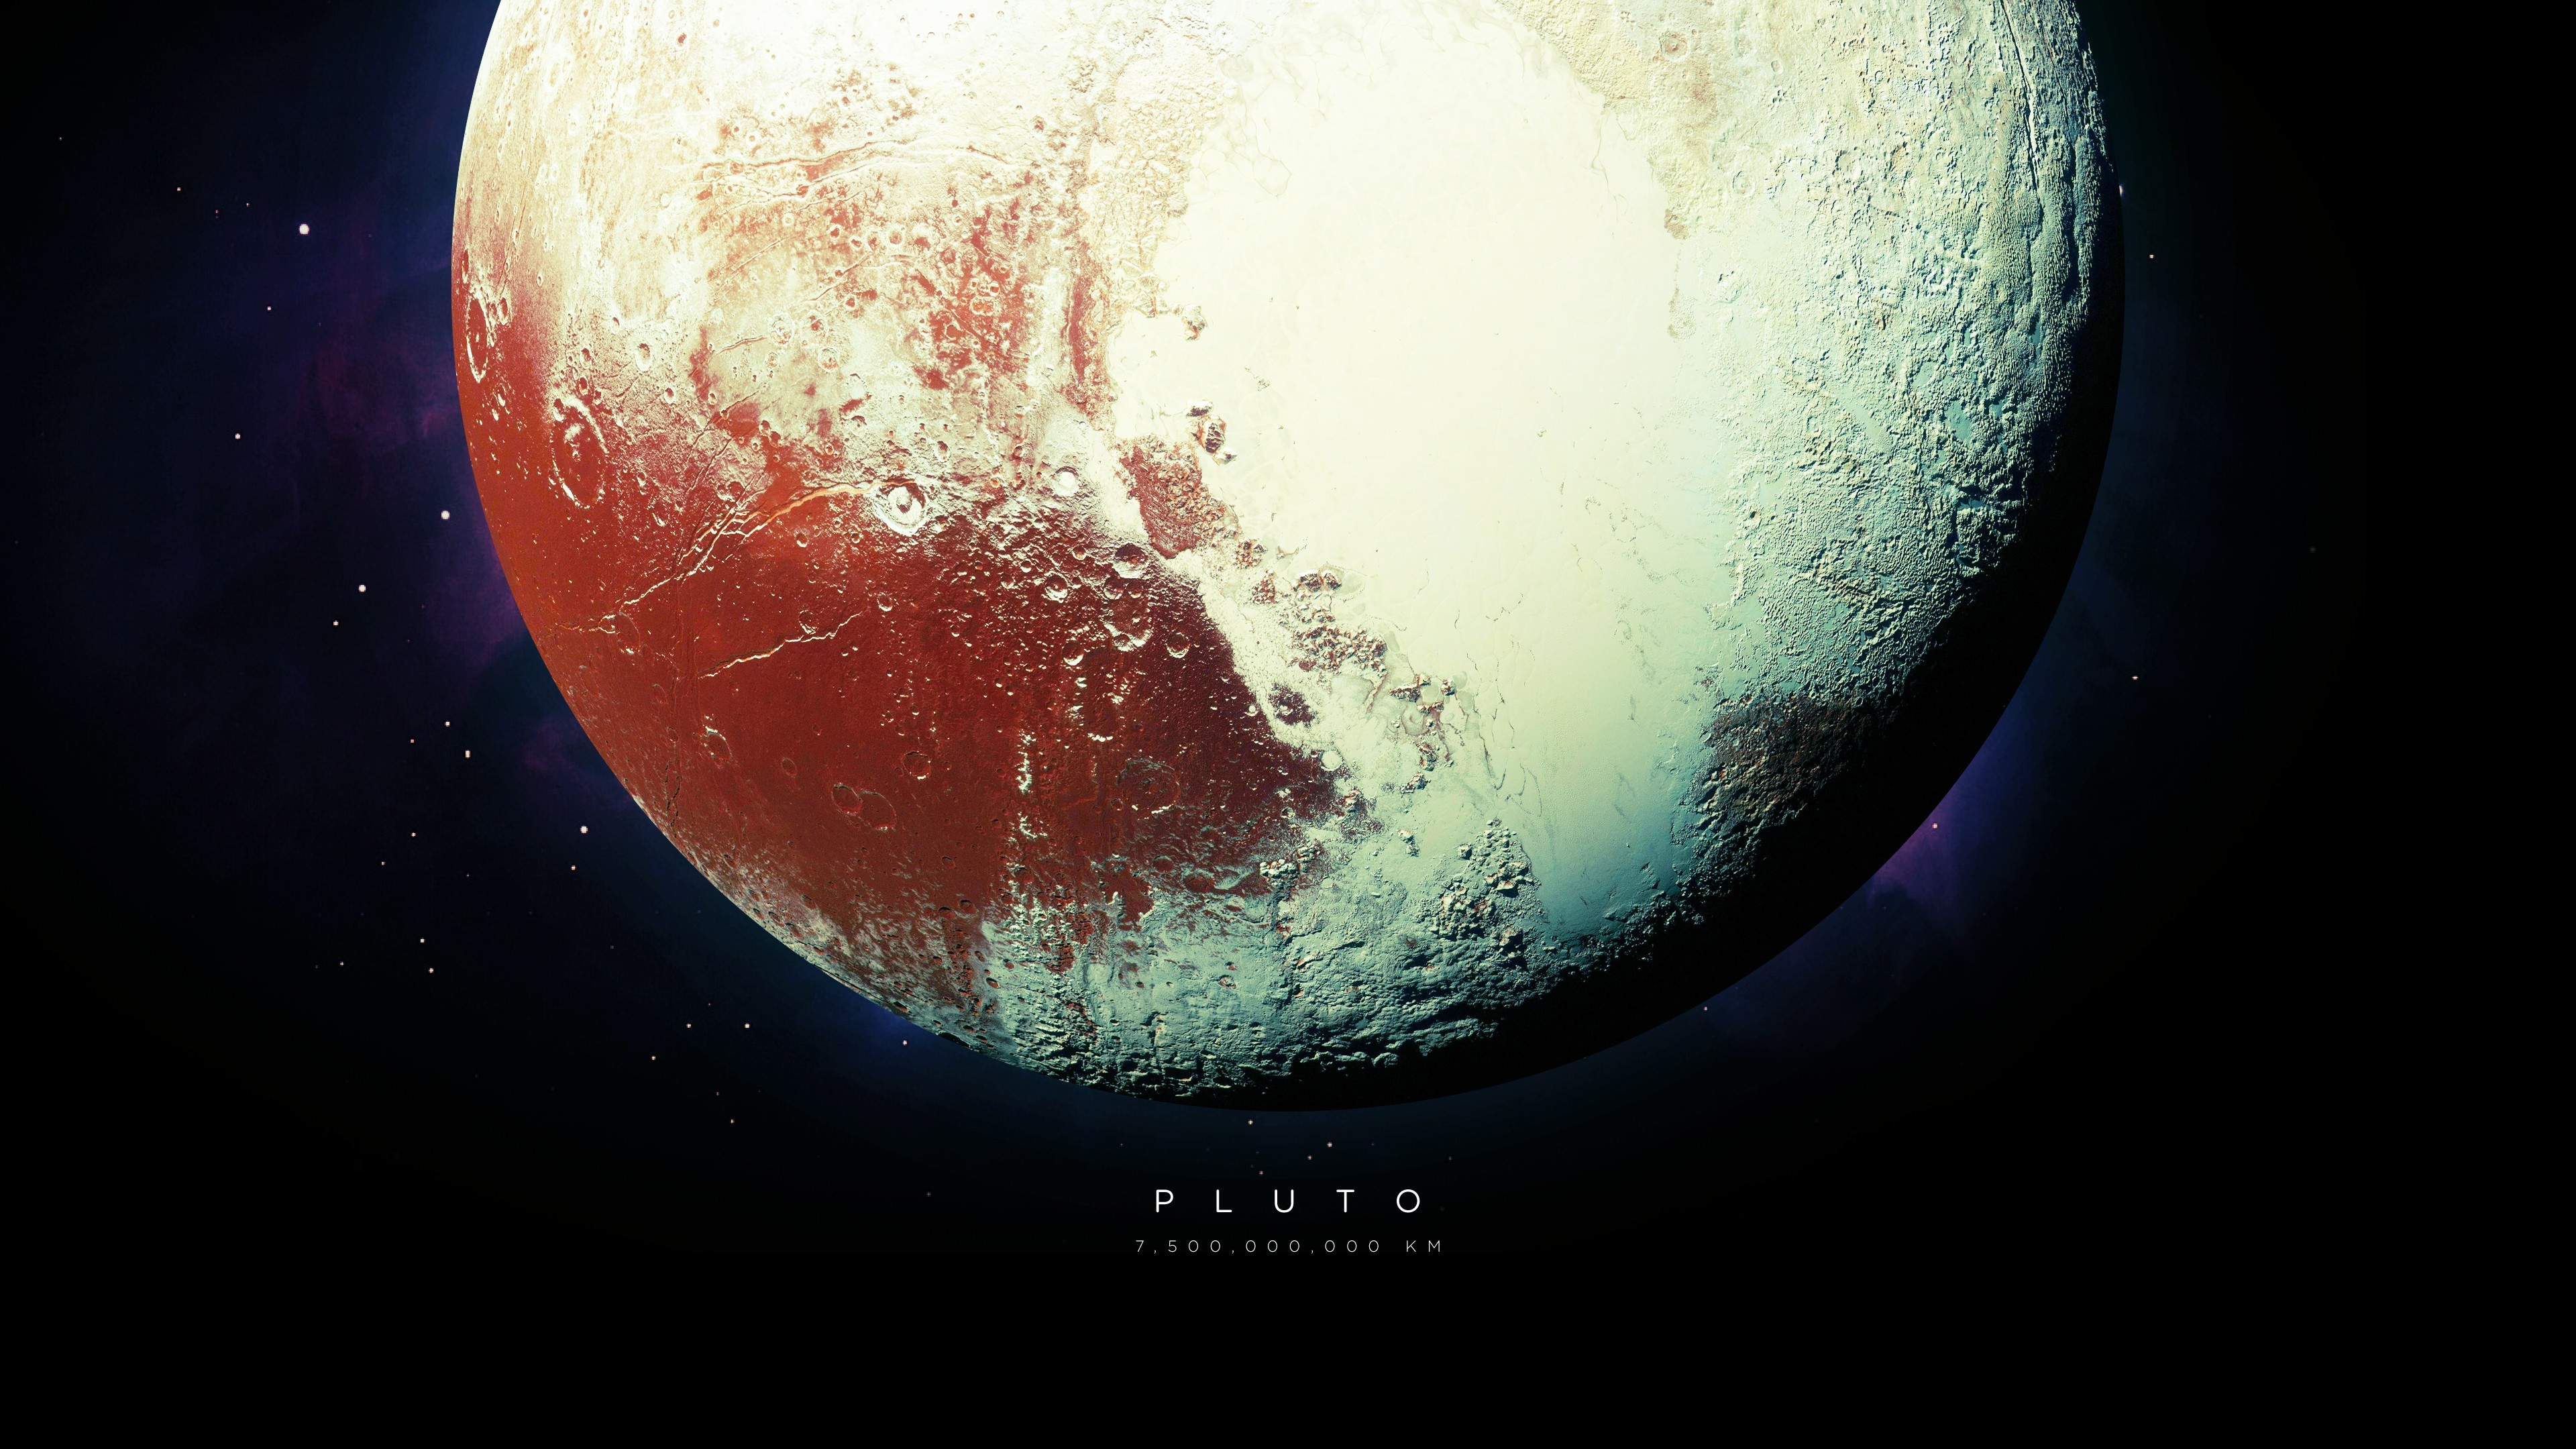 Pluto Wallpaper X For Meizu additionally Background Images Wallpaper Pla s additionally Exotic Blue Bird moreover Clouds X K K Wallpaper K Abstract Blue Live Wallpaper Live additionally Distant Pla s Hd Wallpaper. on cool hd wallpapers planets